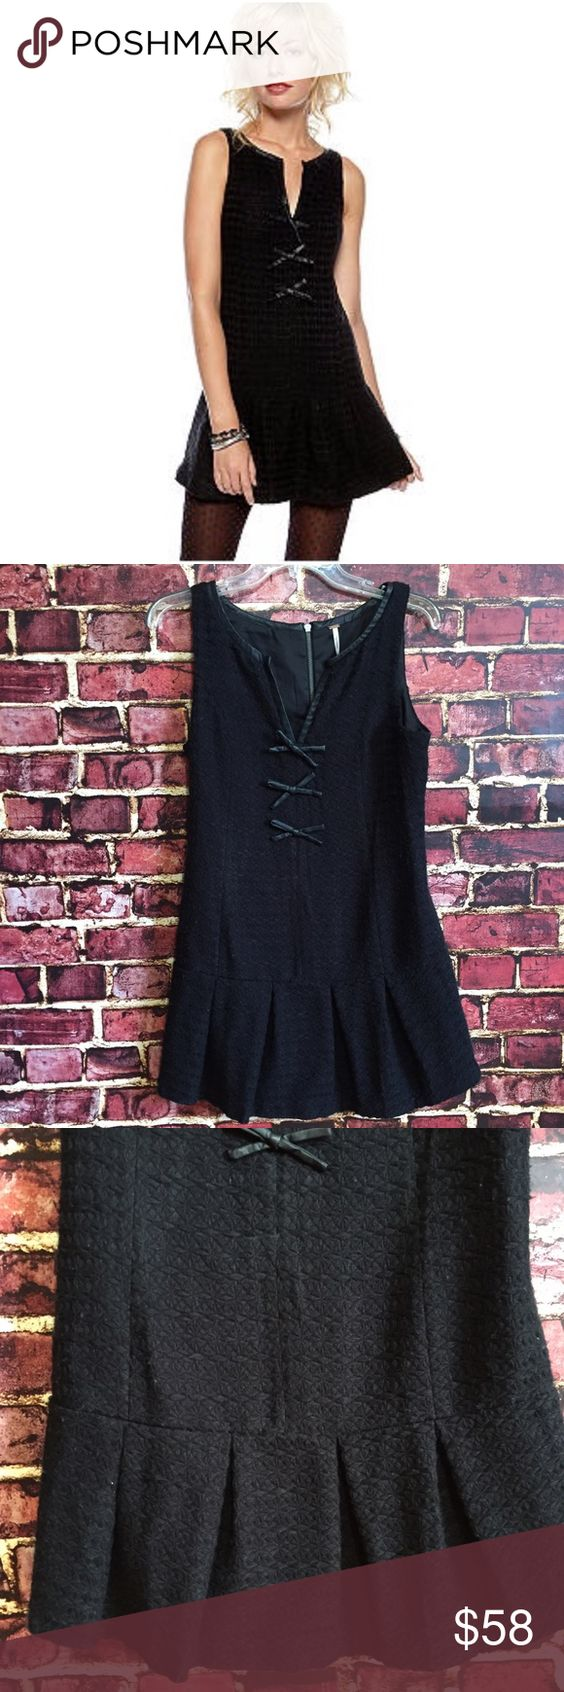 💜Free People wool drop waist bow dress Size 6. Rear zipper. Lined. Drop waist with pleated skirt. NWT $168  💟Fast 1-2 day shipping 💟Reasonable offers accepted 💟Purchase 3 or more items & get a special bundle rate!  💟Smoke-free home Free People Dresses Mini